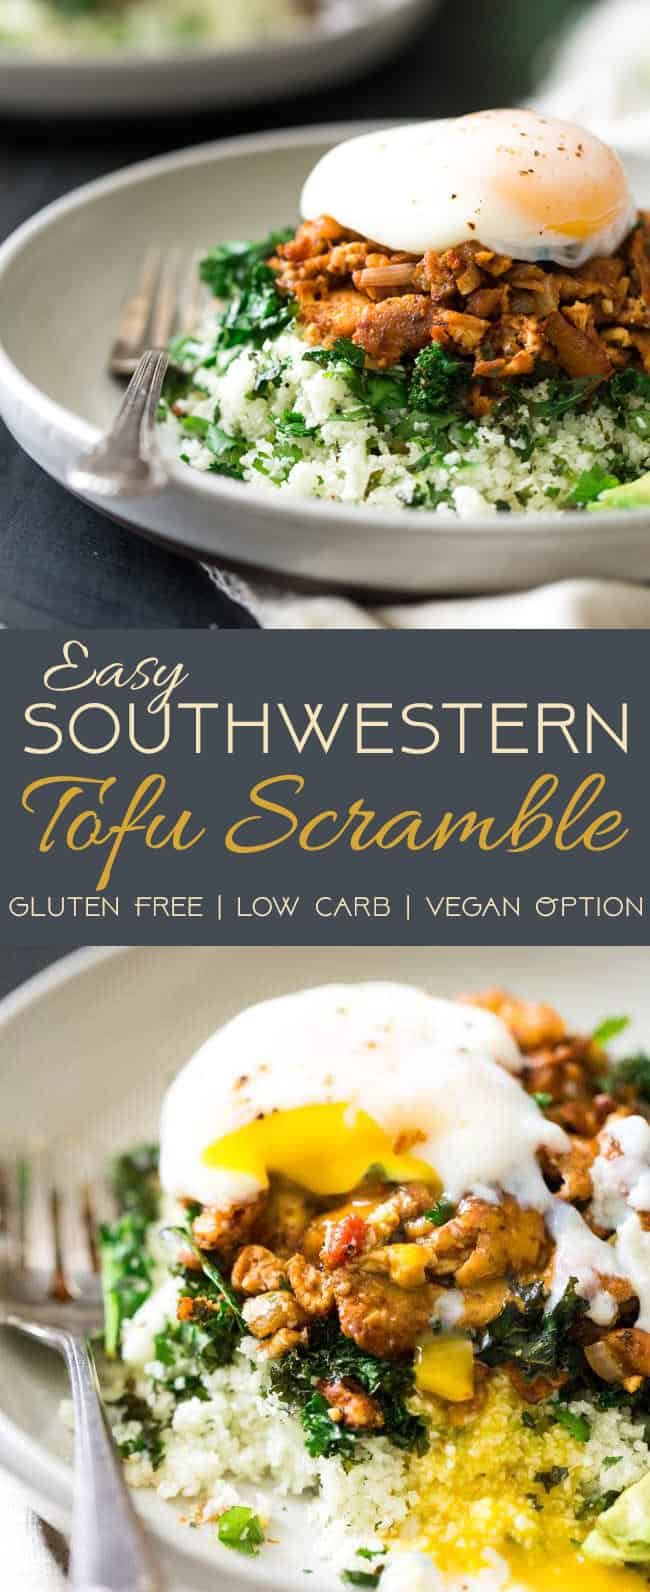 Easy Southwest Tofu Scramble with Cauliflower Rice and Kale - The perfect weeknight meal for your Meatless Monday that is gluten free, low carb and SO delicious! | Foodfaithfitness.com | vegan tofu scramble. tofu stir fry. healthy tofu scramble. mexican tofu. minimalist baker.